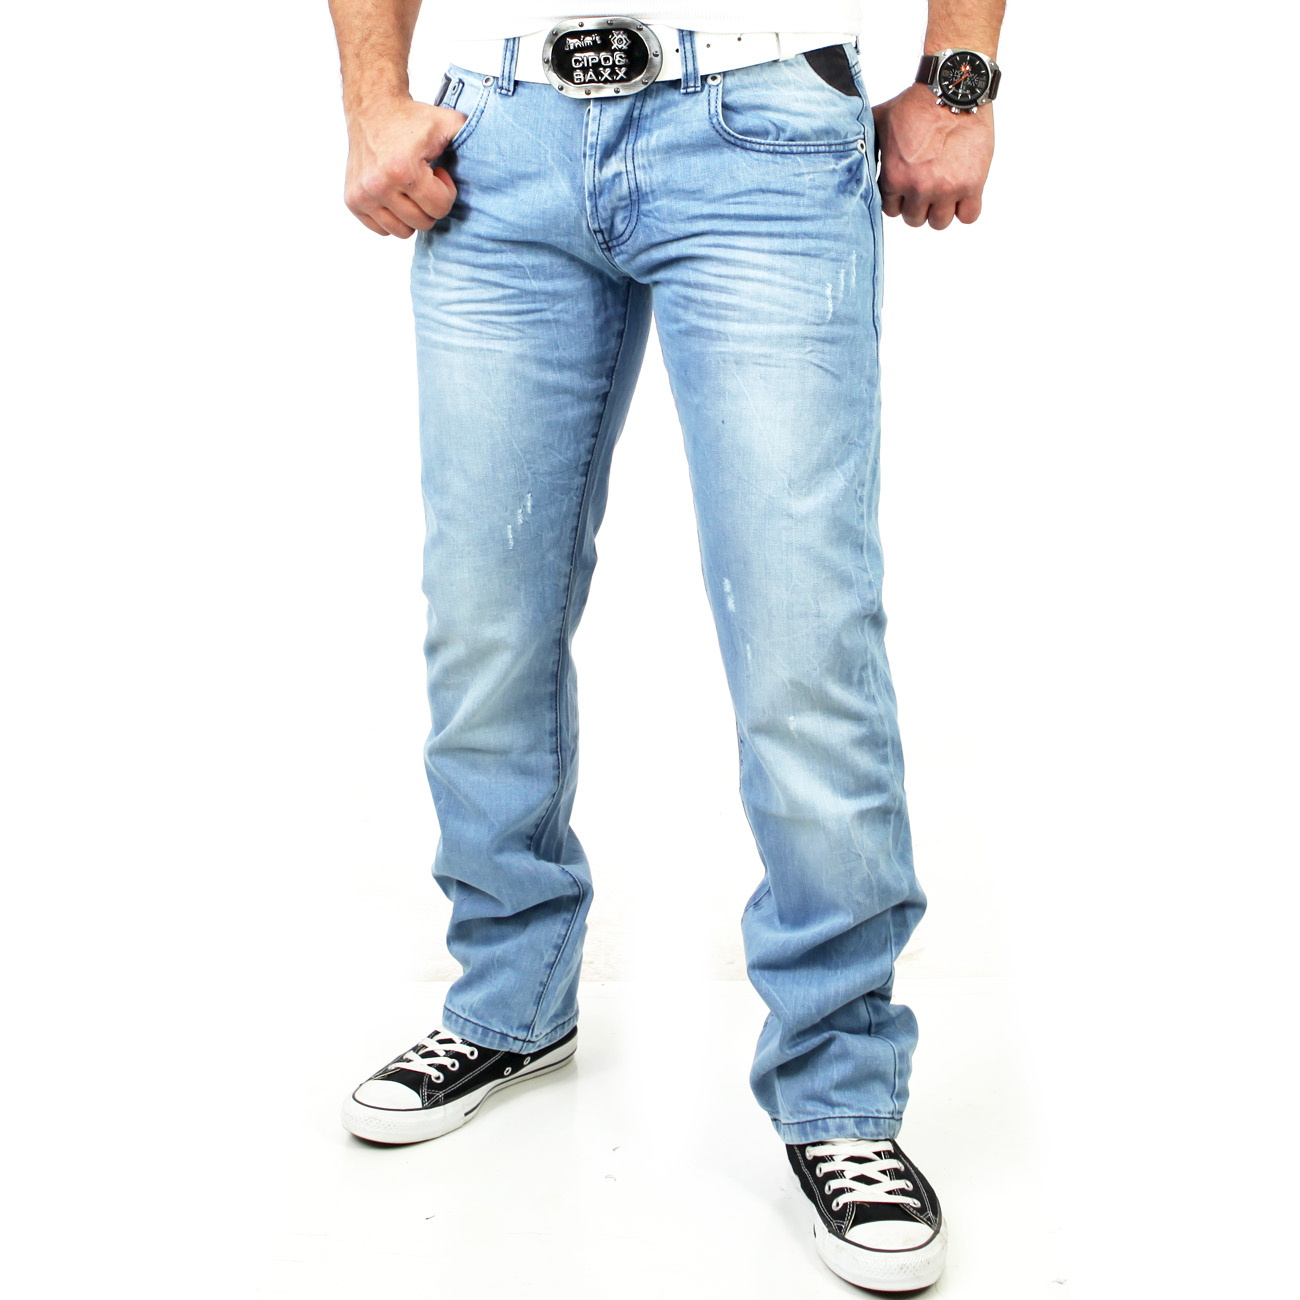 tazzio tz 5155 herren jeanshose bleached vintage leder jeans hose hellblau ebay. Black Bedroom Furniture Sets. Home Design Ideas